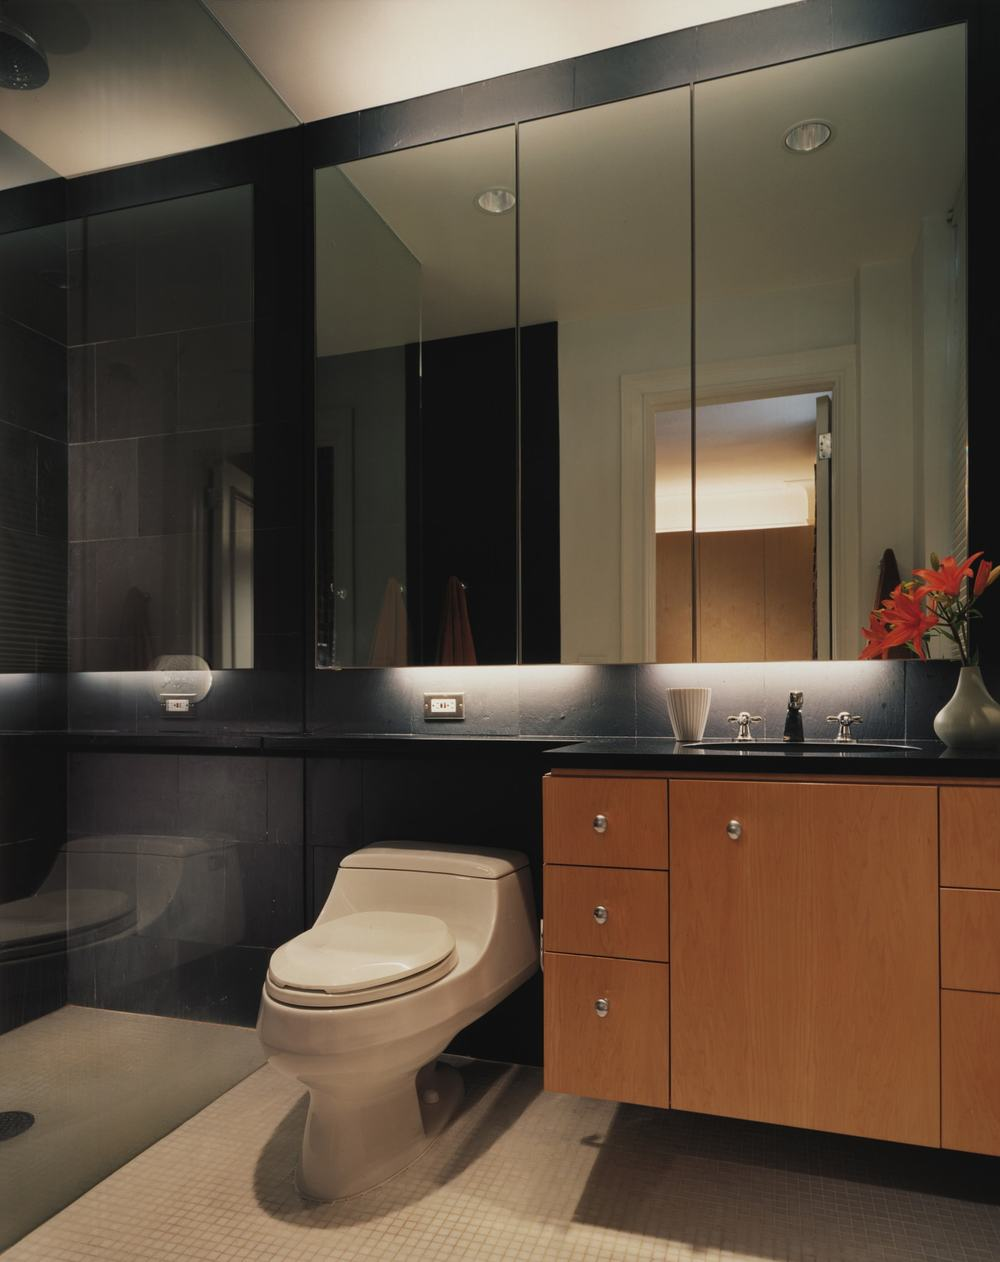 Modern Apartment Renovation | Upper East Side Manhattan New York City | Bathroom Custom Vanity Cabinet Black Tile | RES4